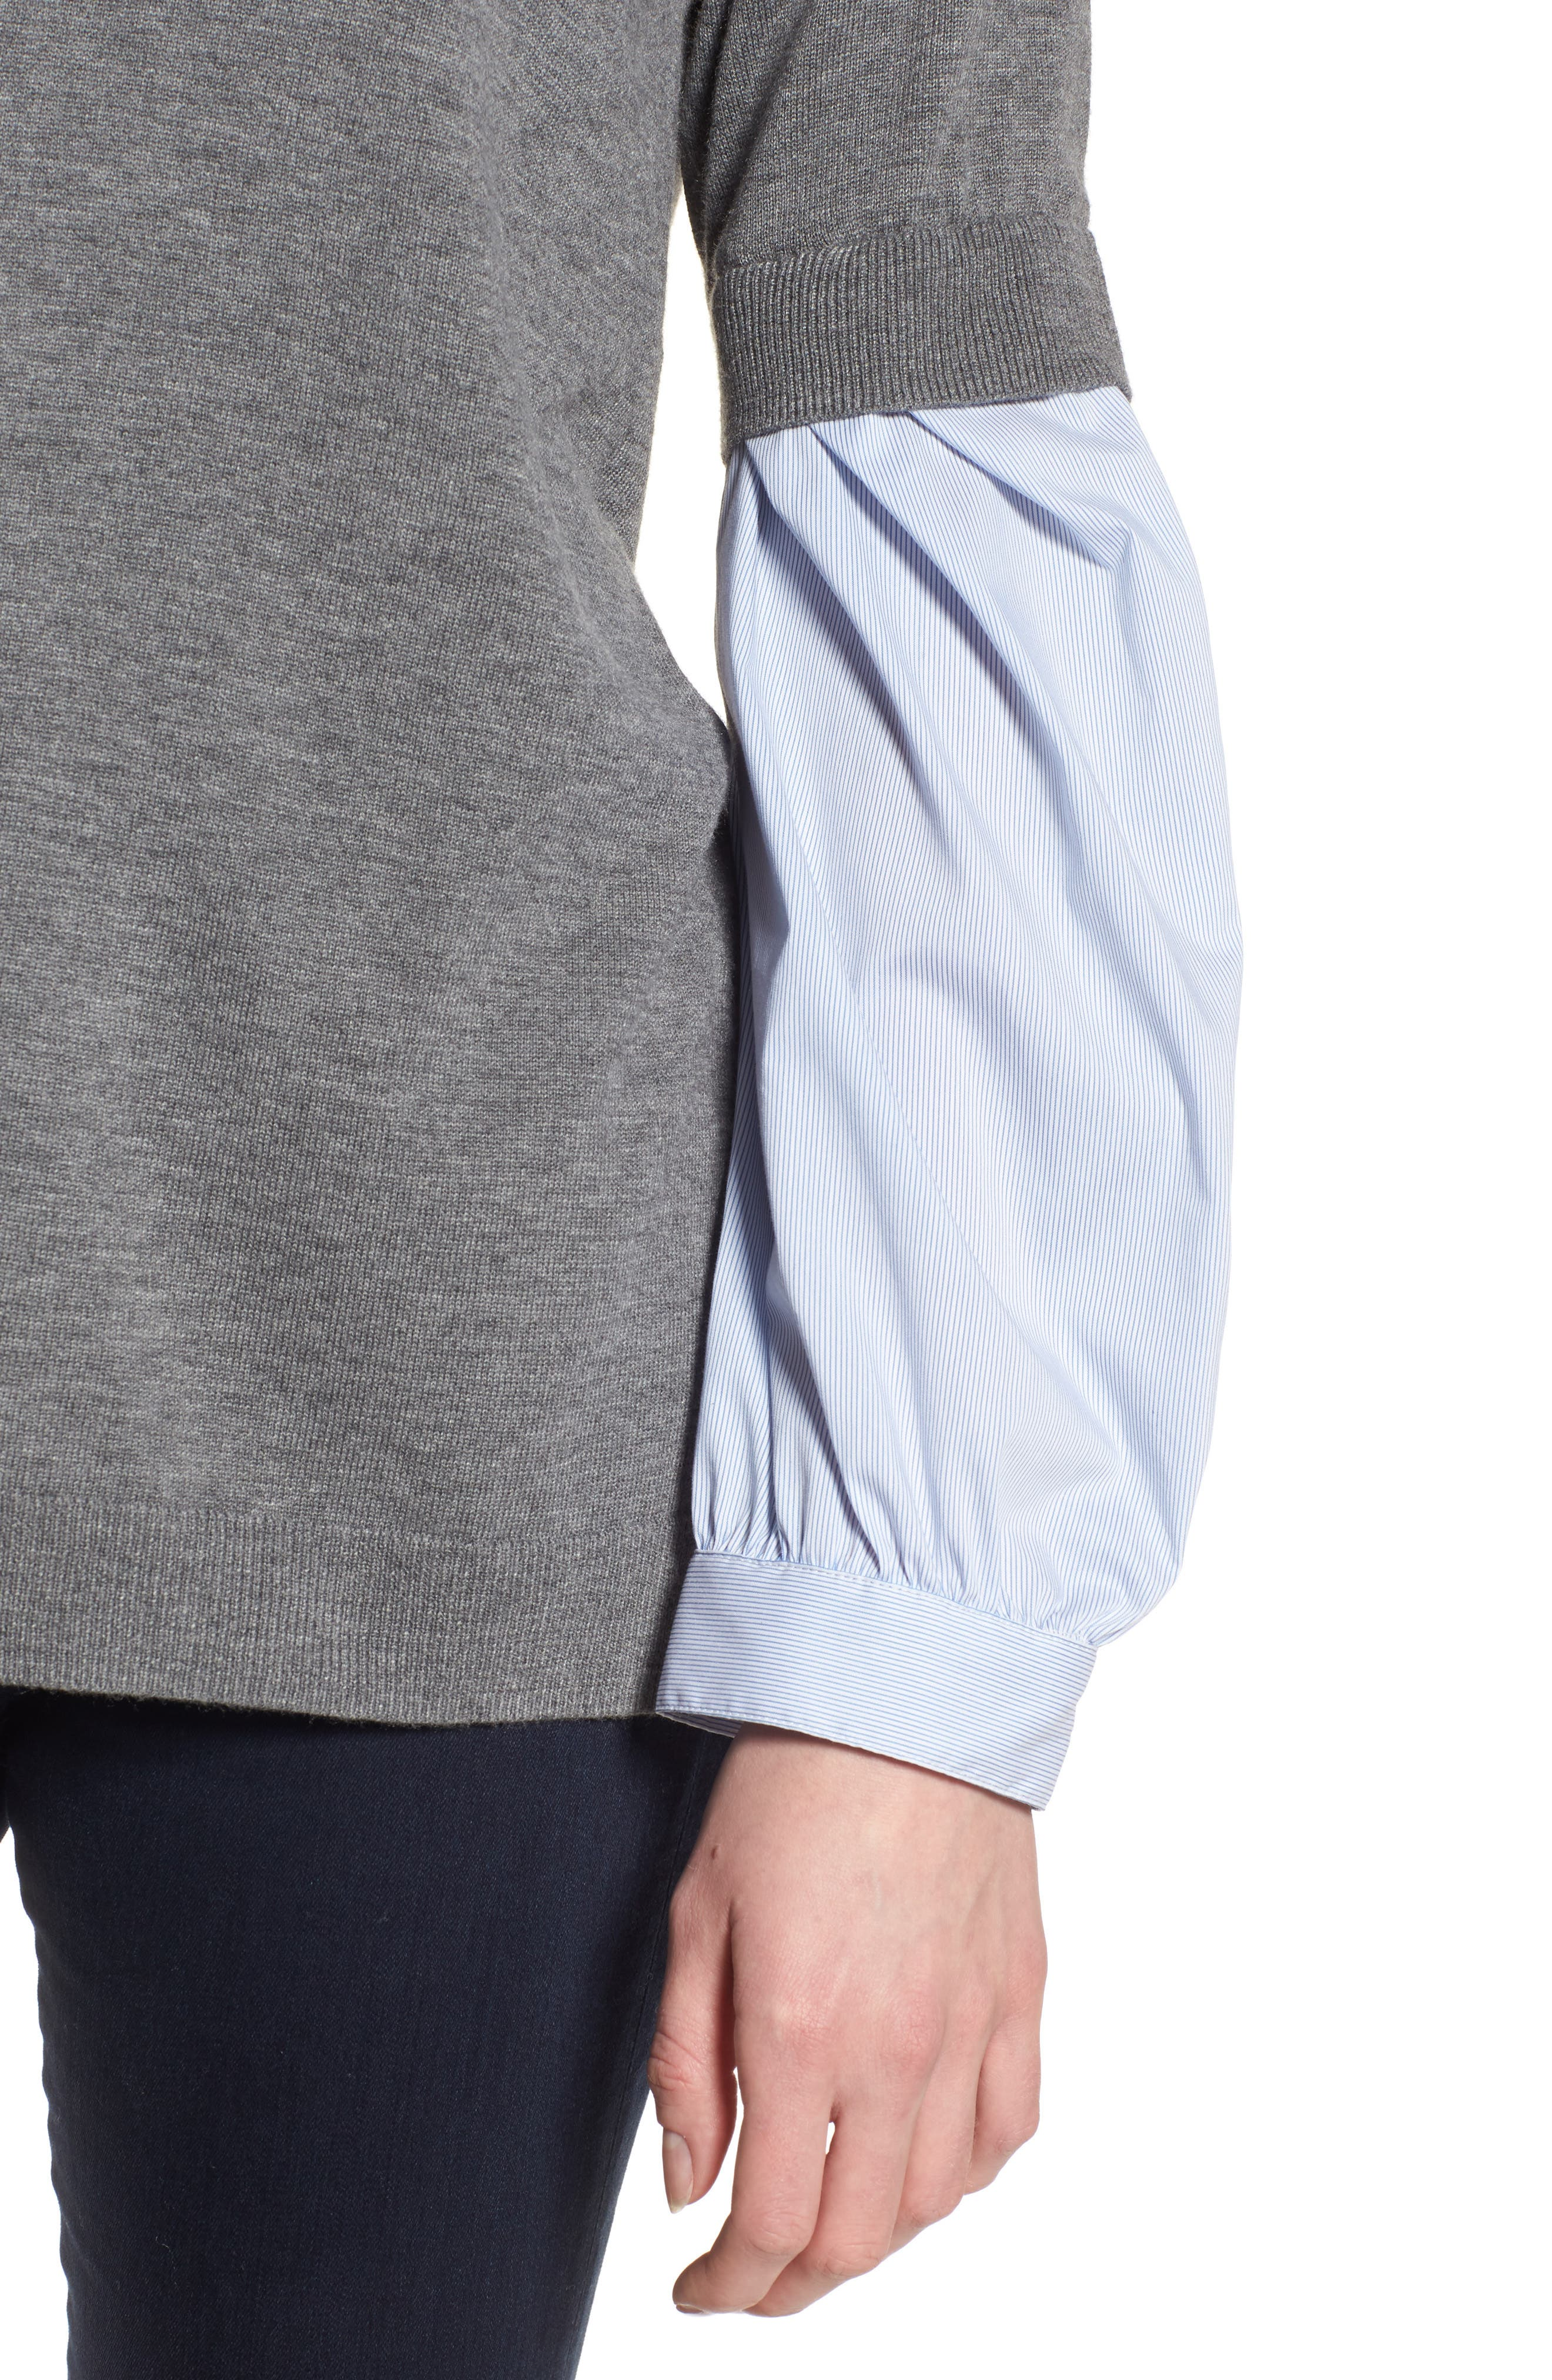 Woven Sleeve Sweater,                             Alternate thumbnail 4, color,                             030